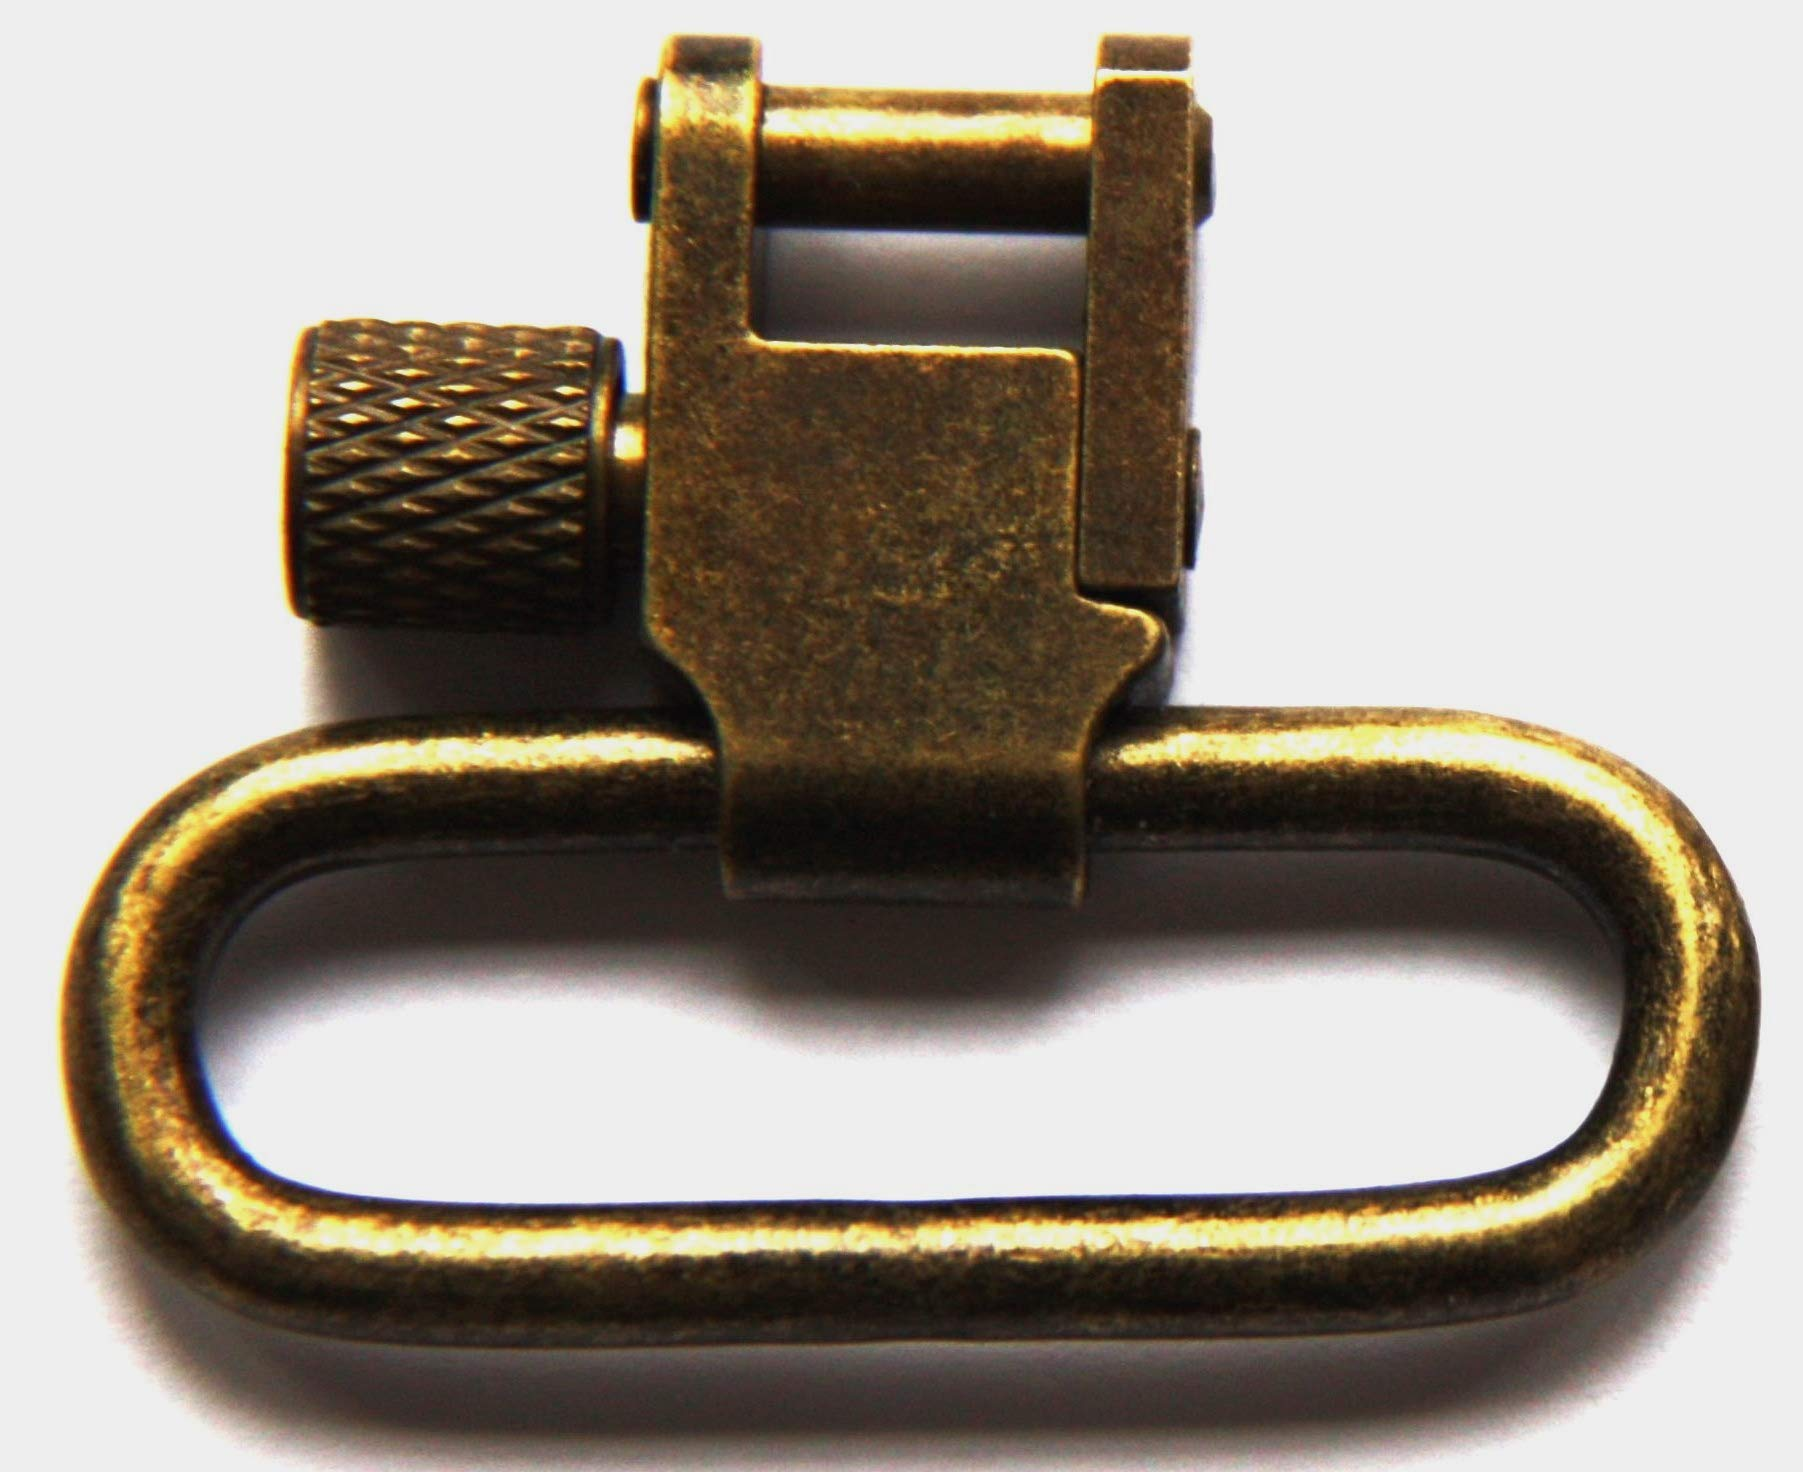 Detroit Leather Shop Pair of Antique Brass Finish 1.25 Inch Tri-Lock Rifle Sling Swivels by Detroit Leather Shop